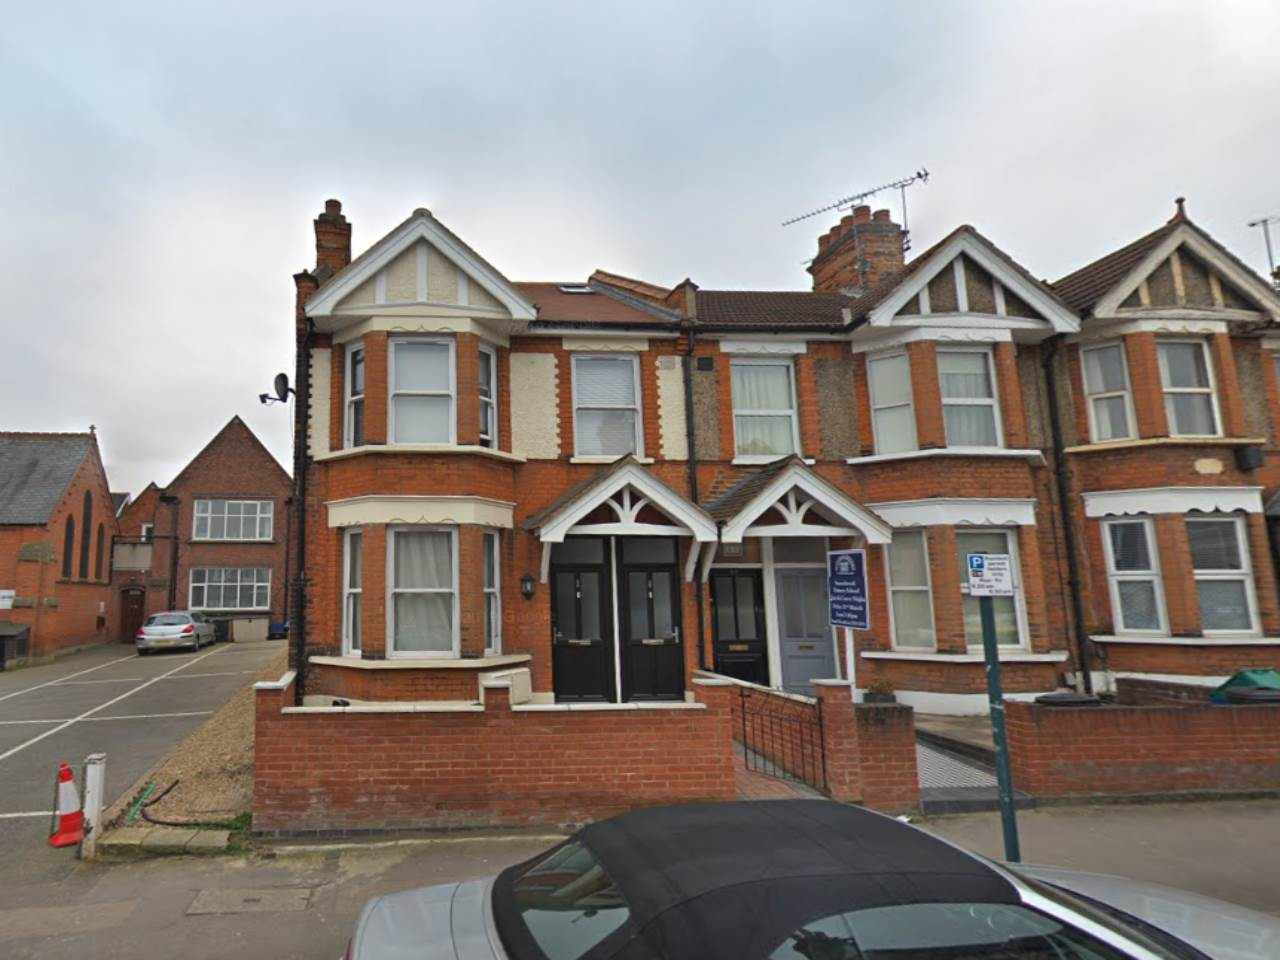 3 bed flat to rent in South Woodford, E18